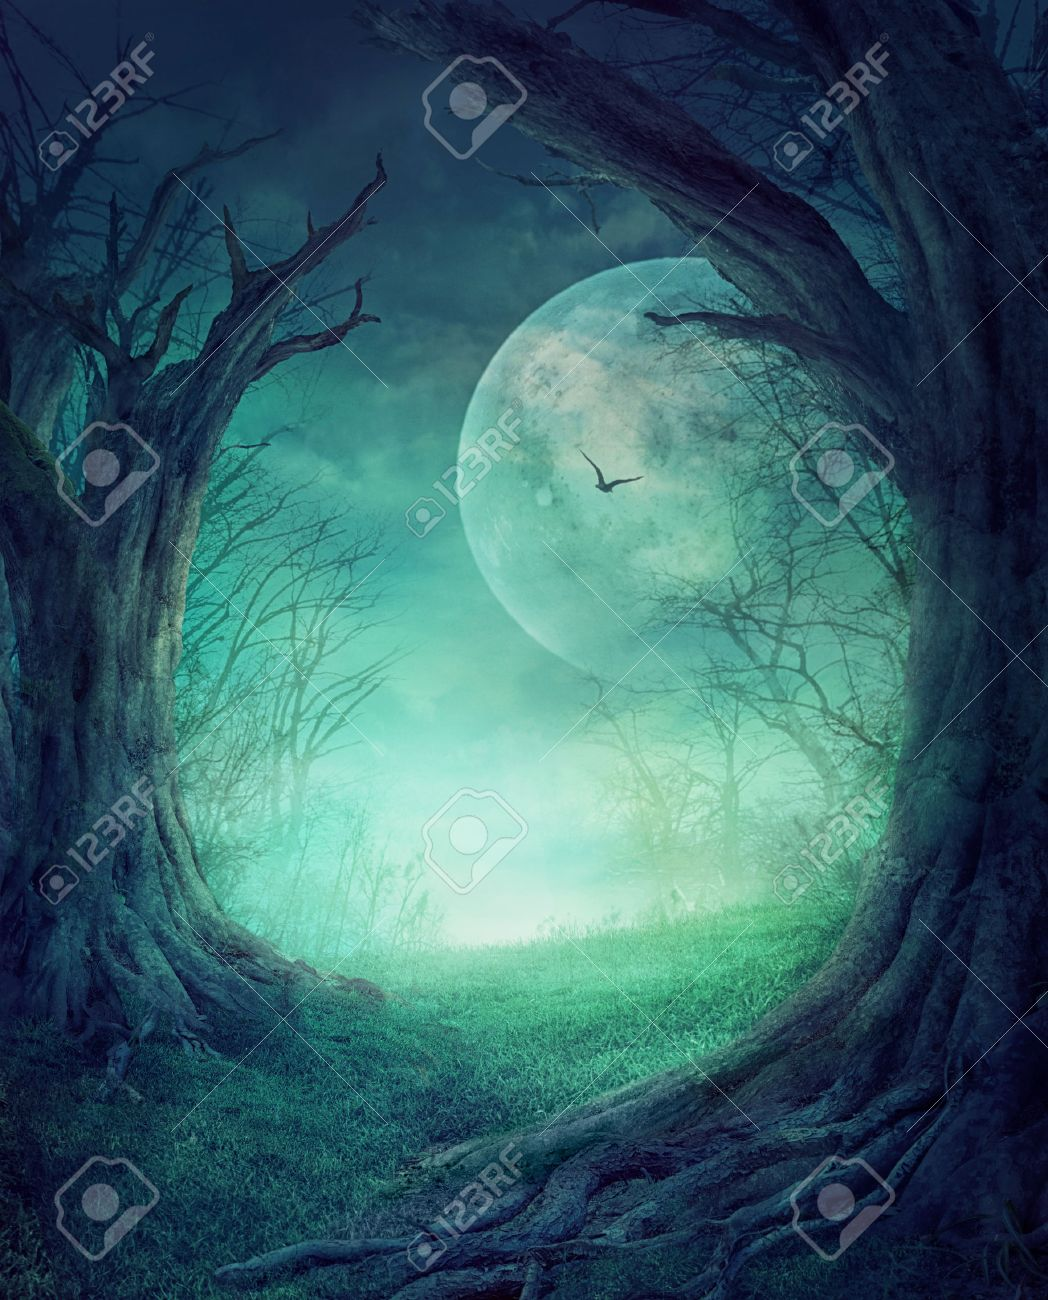 Halloween design - Spooky tree. Horror background with autumn valley with woods, spooky tree and full moon. Space for your Halloween holiday text. - 46775025